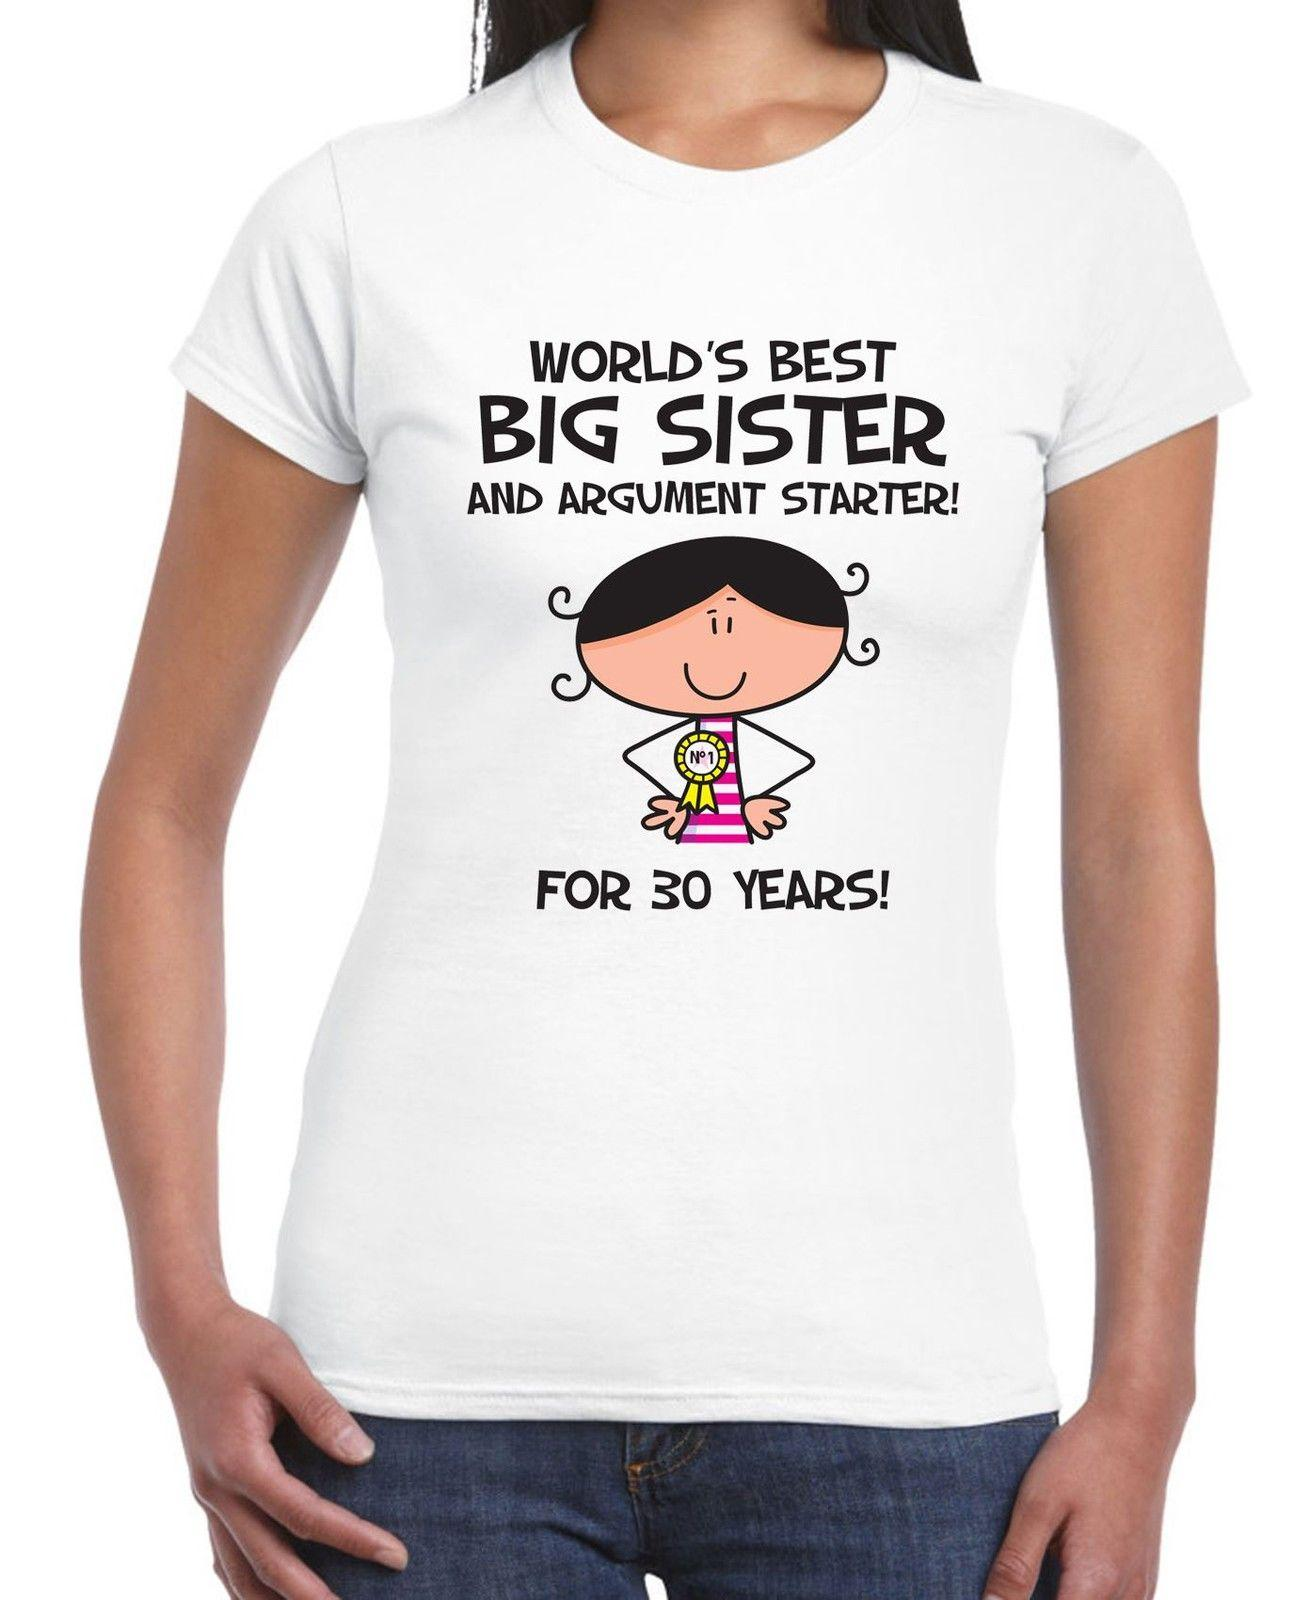 Worlds Best Big Sister WomenS 30th Birthday Present T Shirt Gift Shirts Very Funny From Designtshirts201806 1066